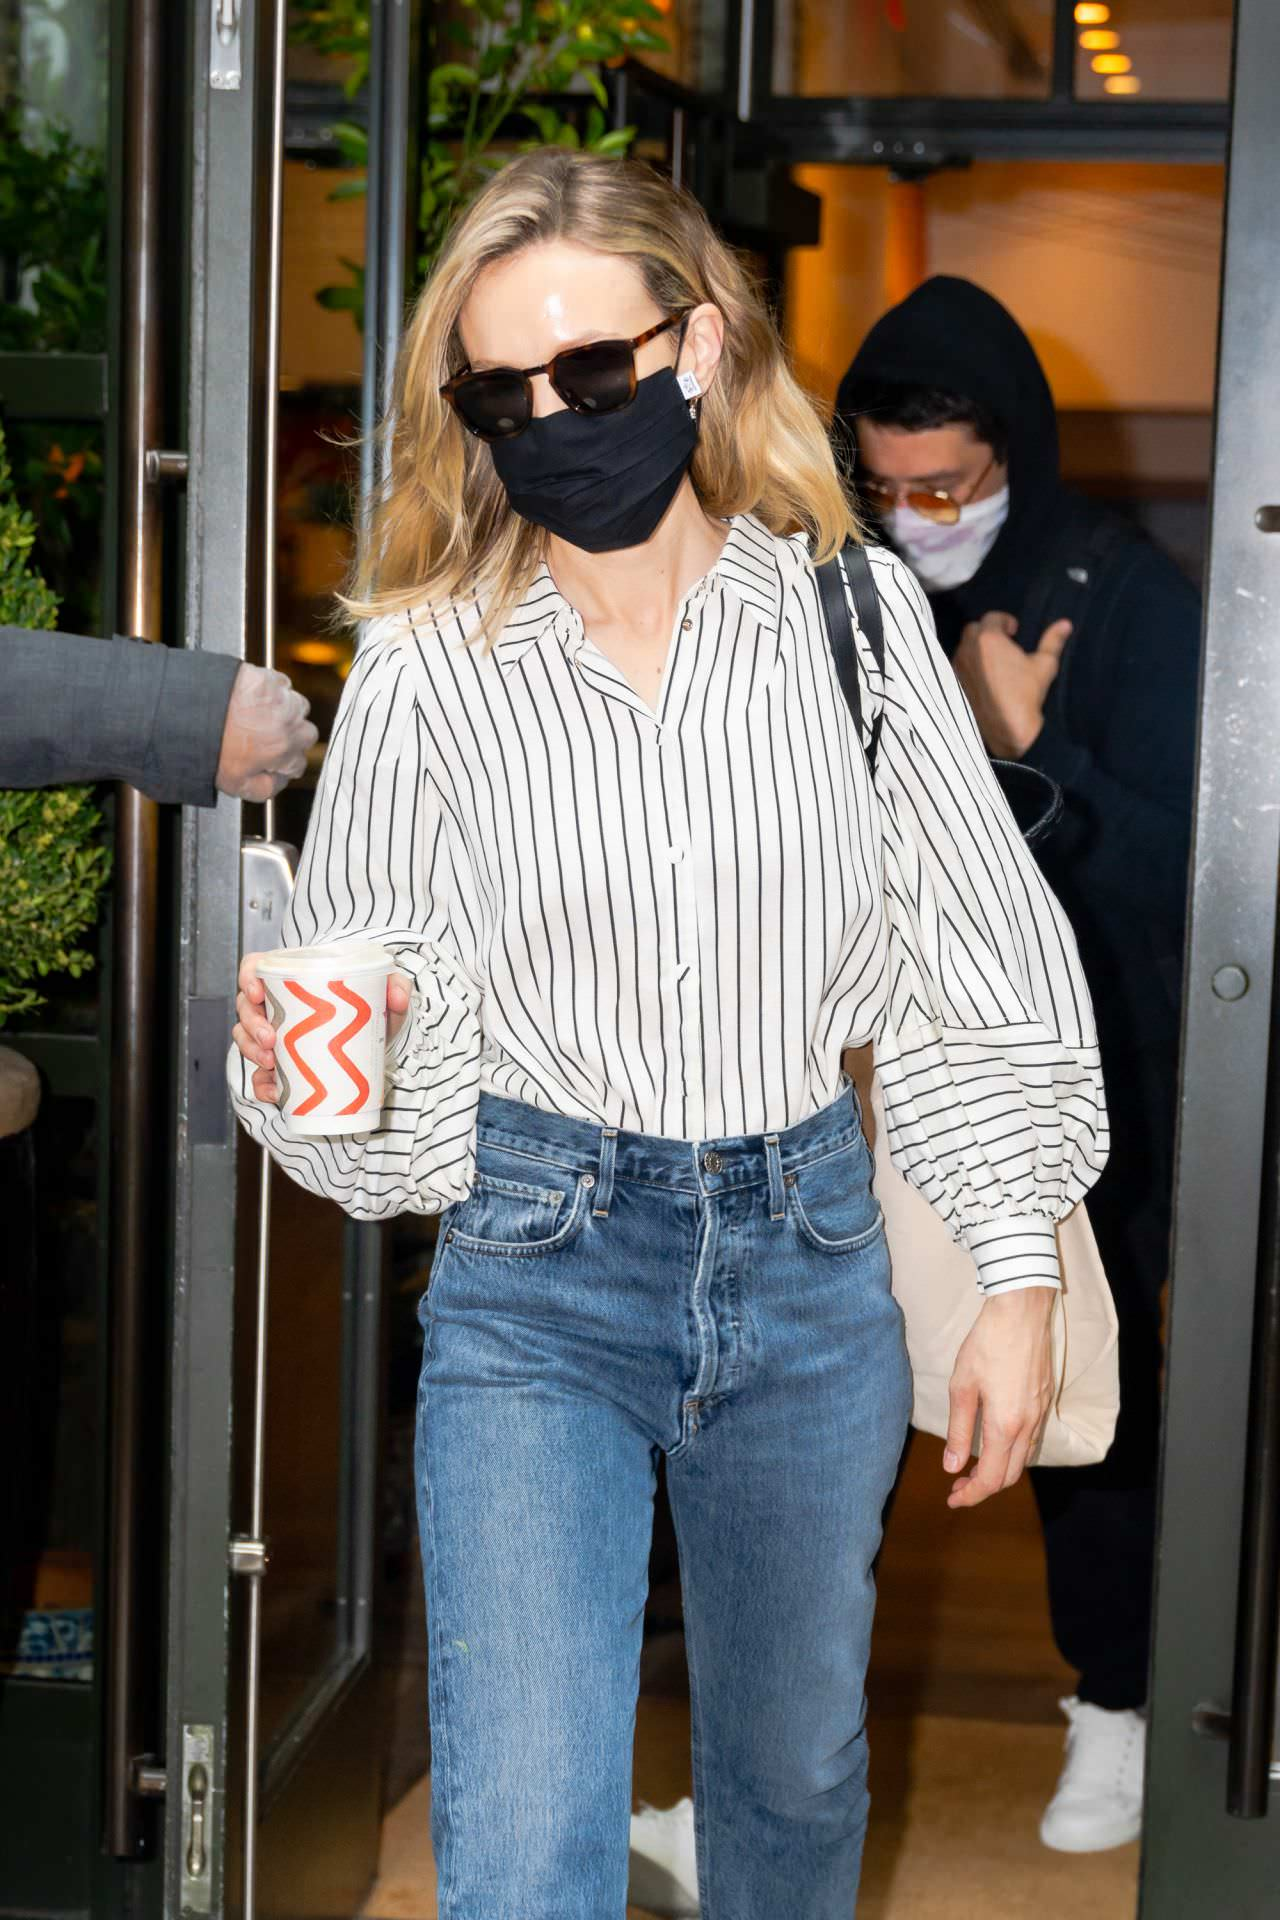 Carey Mulligan Casually in Jeans as she Steps Out in NY